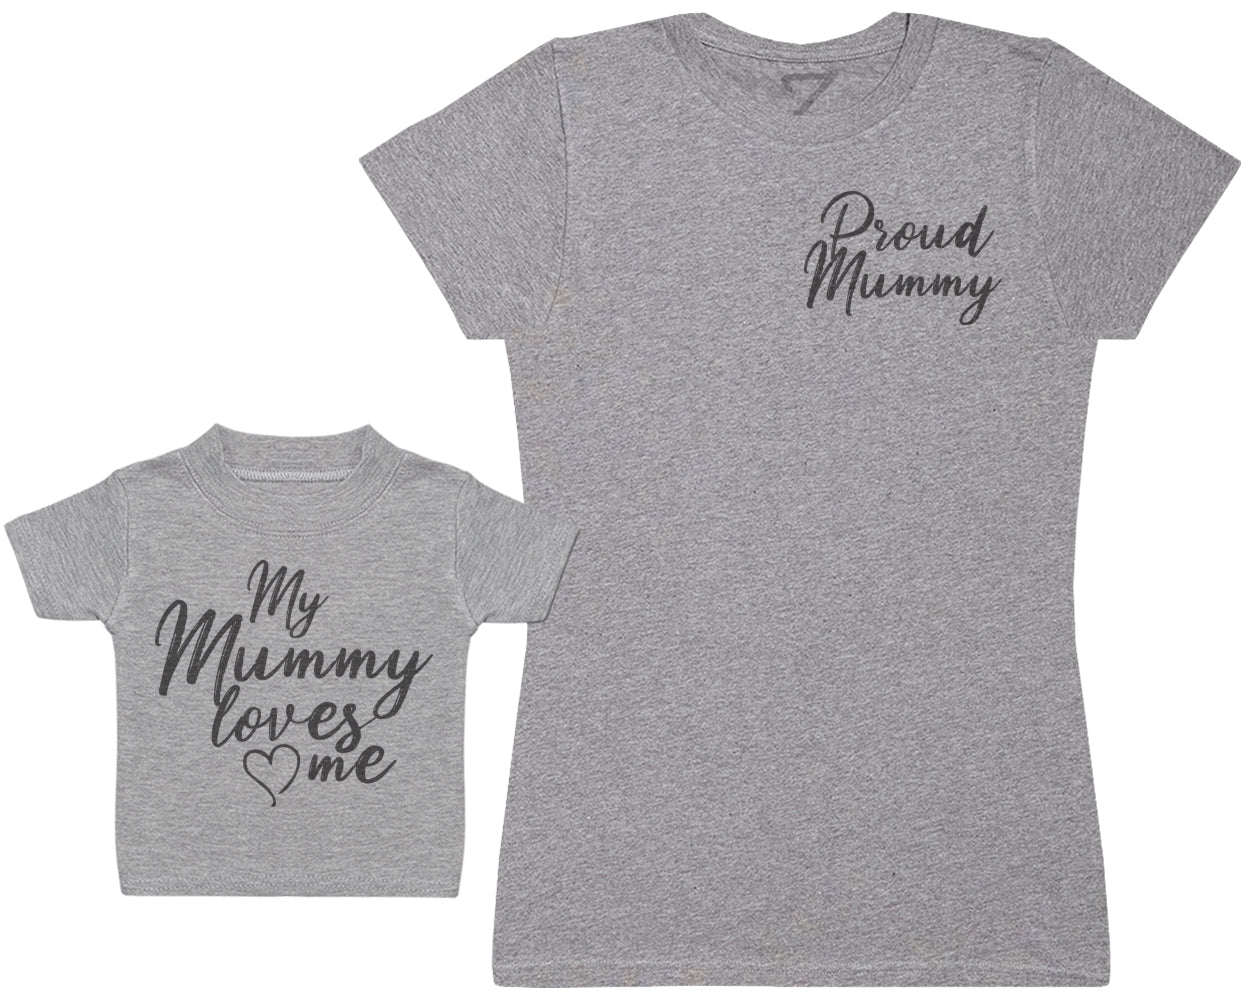 My Mummy Loves Me - Kid's Gift Set with Kid's T-Shirt & Mother's T-Shirt